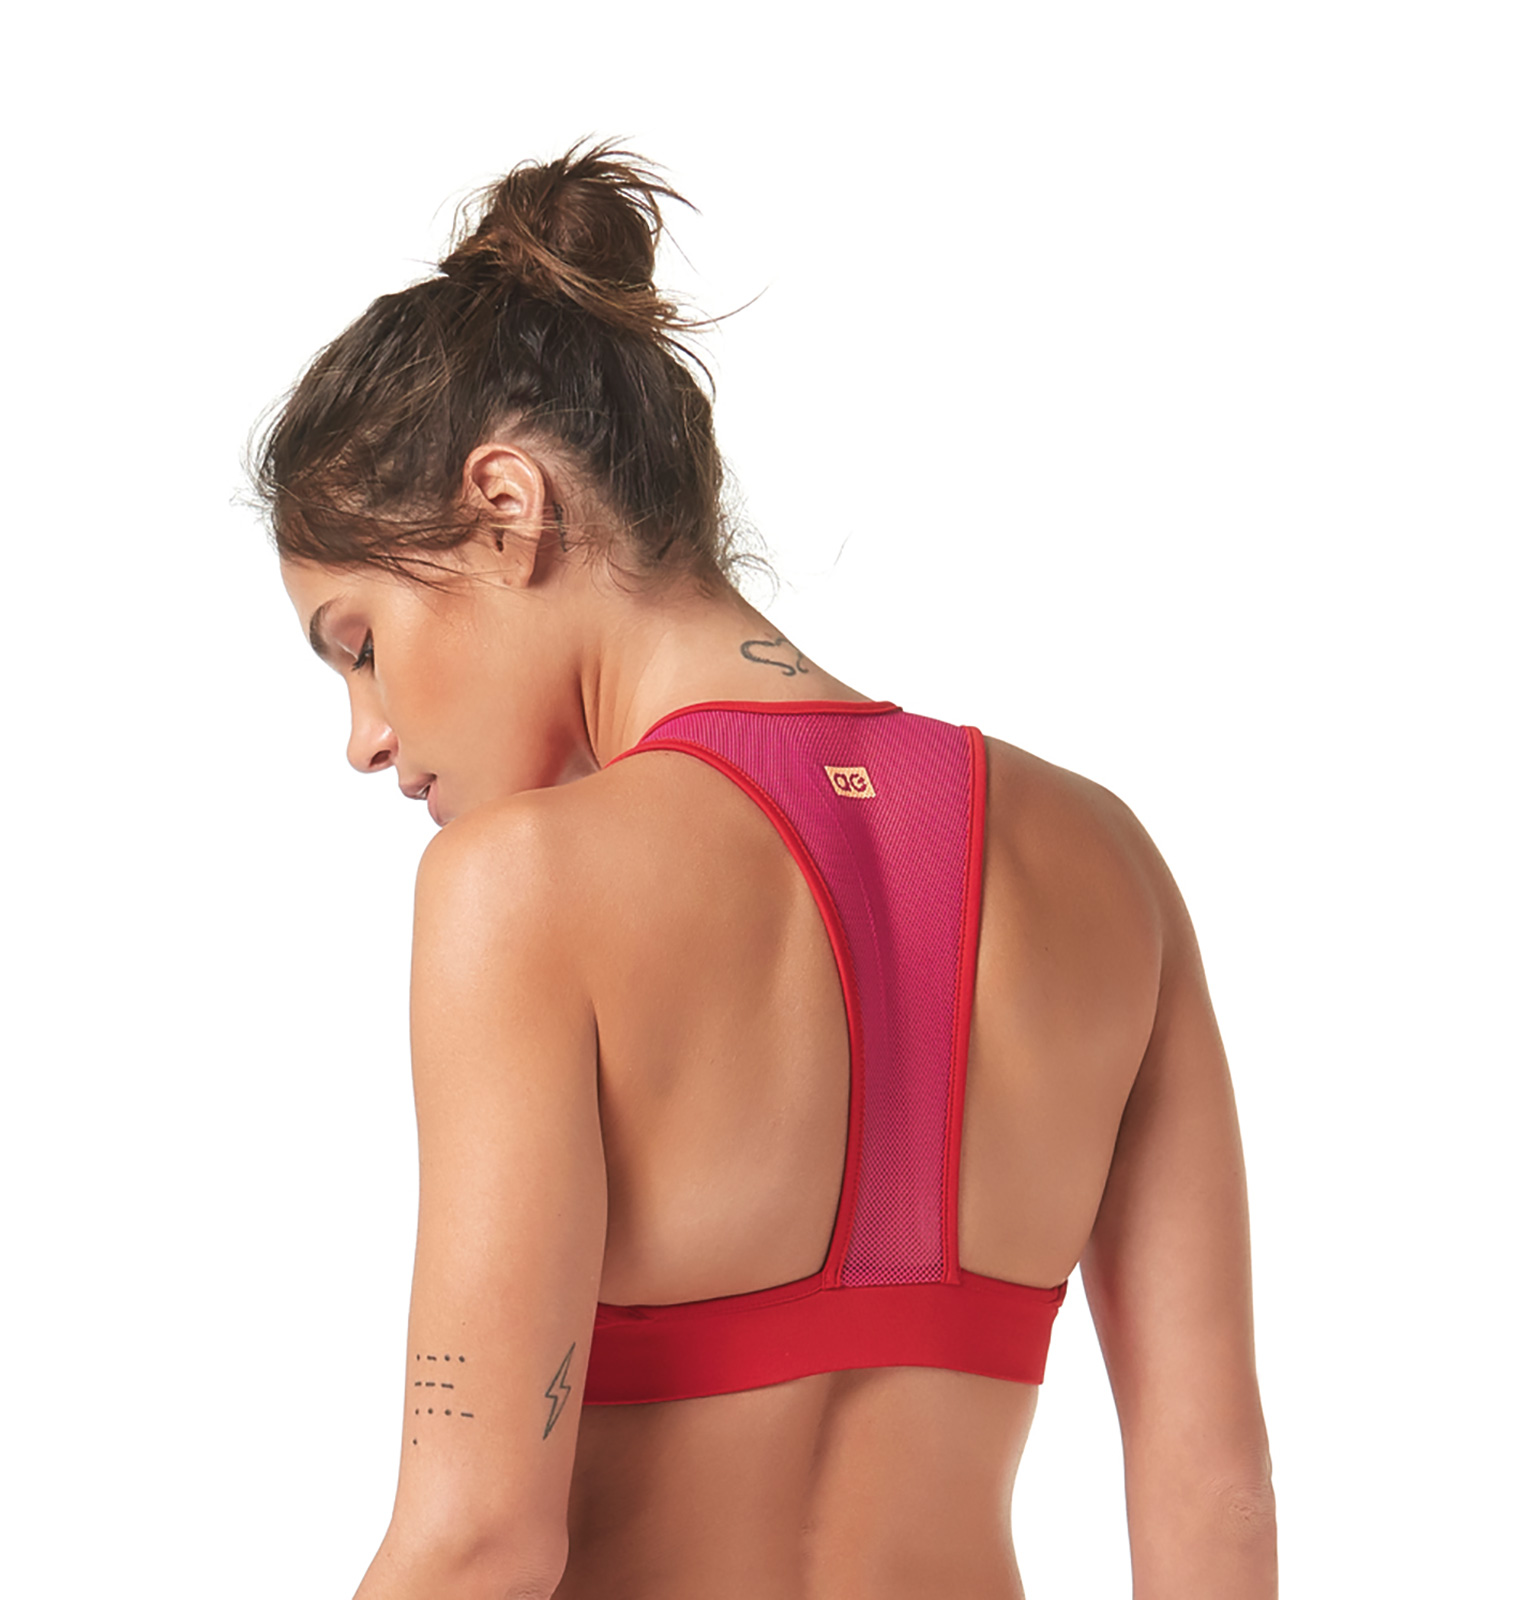 fa1ff89b0f2e4 Fitness top Pink And Red Racerback Fitness Bra Top - Top Be Fit